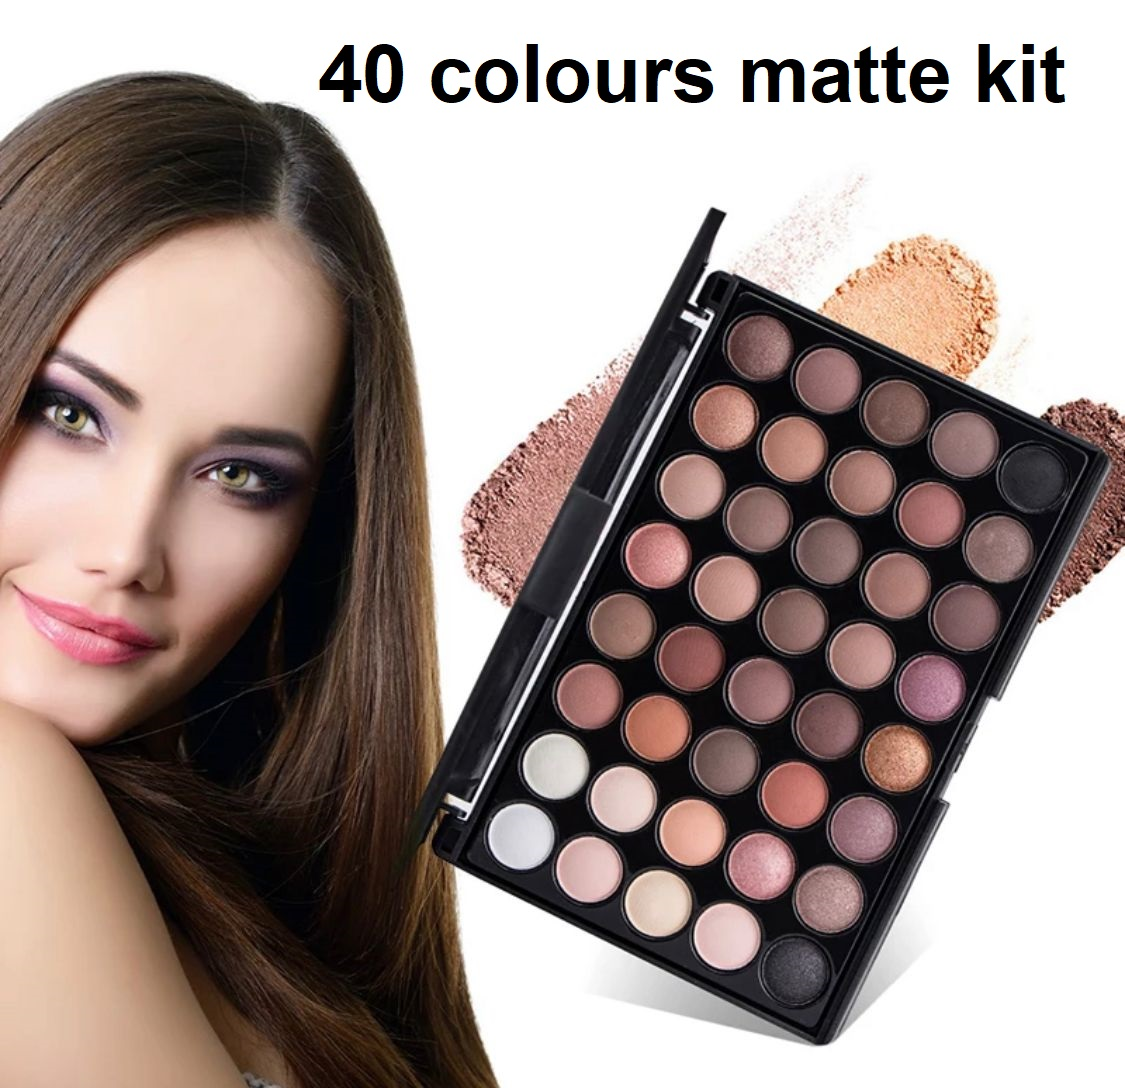 Eyeshadow Palette many Colors Glitter Matte Shimmer Eye Shadow Makeup Cosmetic Kit travel friendly, completely different, gift able, innovative, beautiful palettes College Girls easy to carry Eye Shadow Makeup Cosmetic Kit Multicolor Eyes shadow